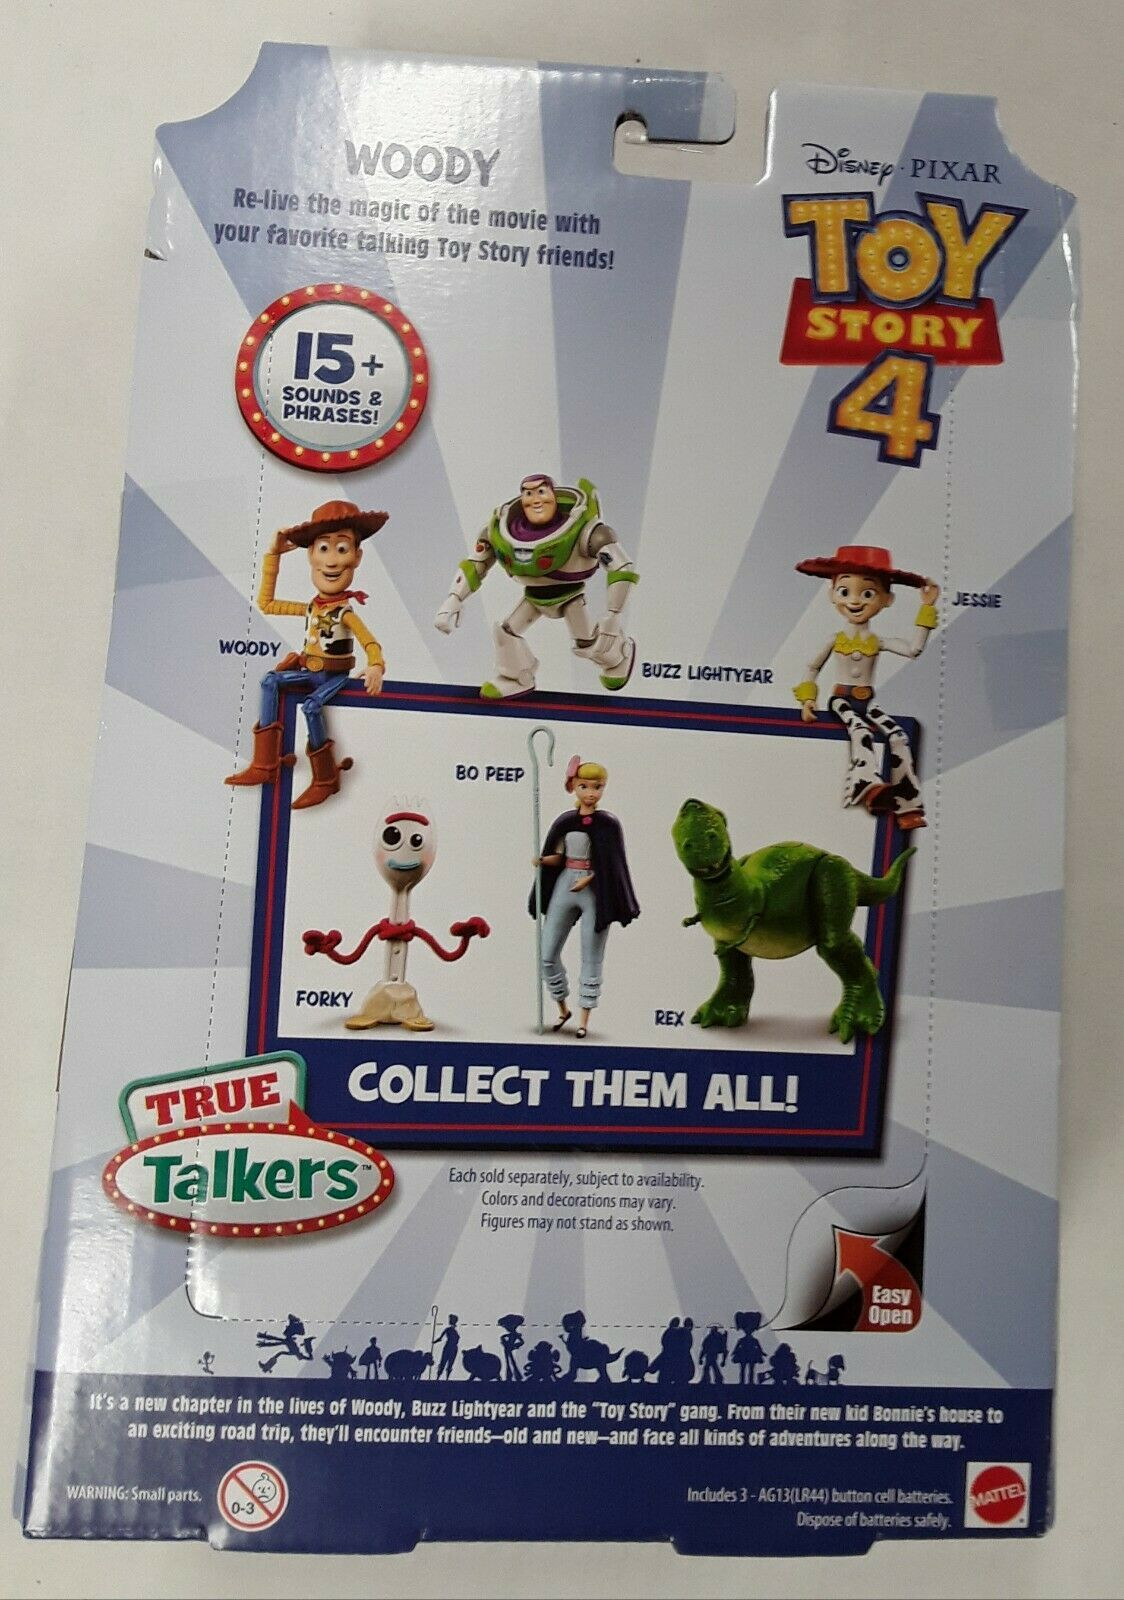 "Disney Pixar Toy Story 4 True Talkers Talking Woody Figure 9.2"" BRAND NEW image 6"